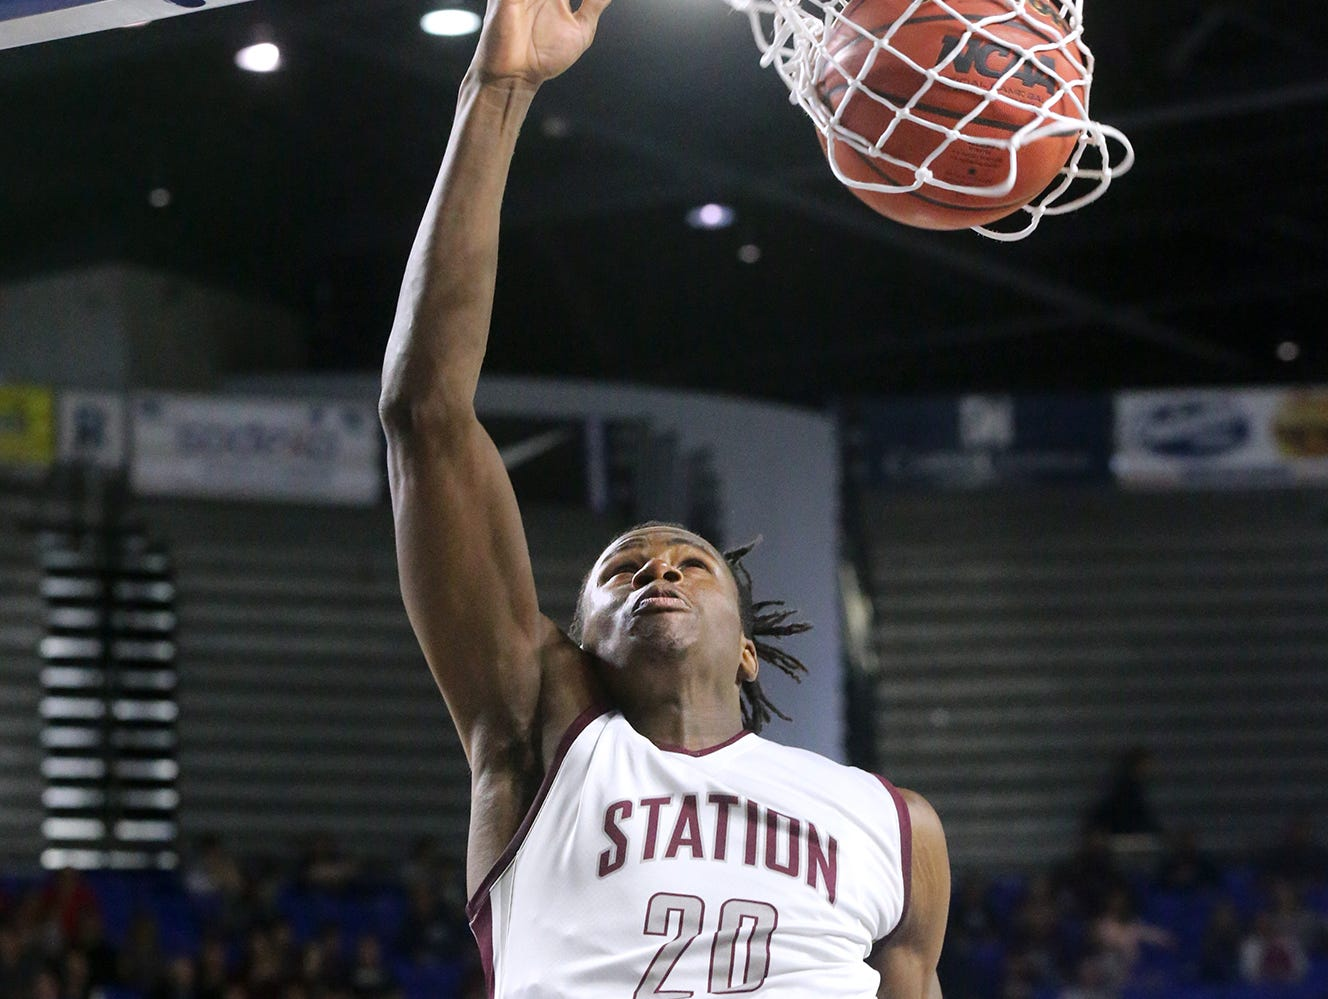 Station Camp's Yalen Reed (20) goes up for a shot against David Crockett during the Class AAA boys quarterfinals at MTSU's Murphy Center Wednesday.